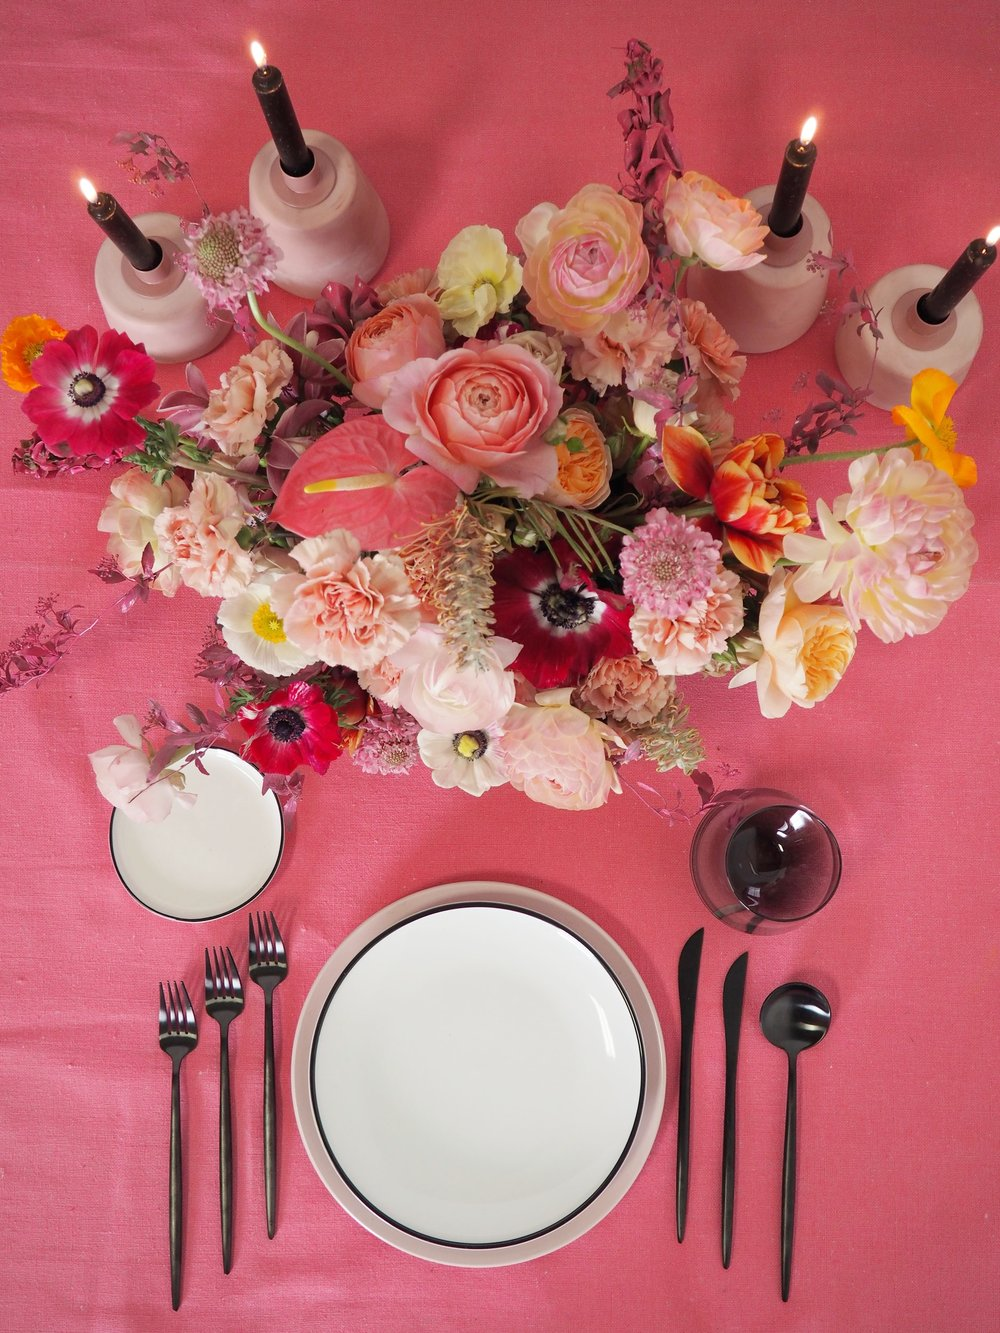 Terra Cotta Tapers, Smoke Grey Stemless, Black Flatware, Blush Dinner Plate, Aura Black & Gold Salad and B&B plates